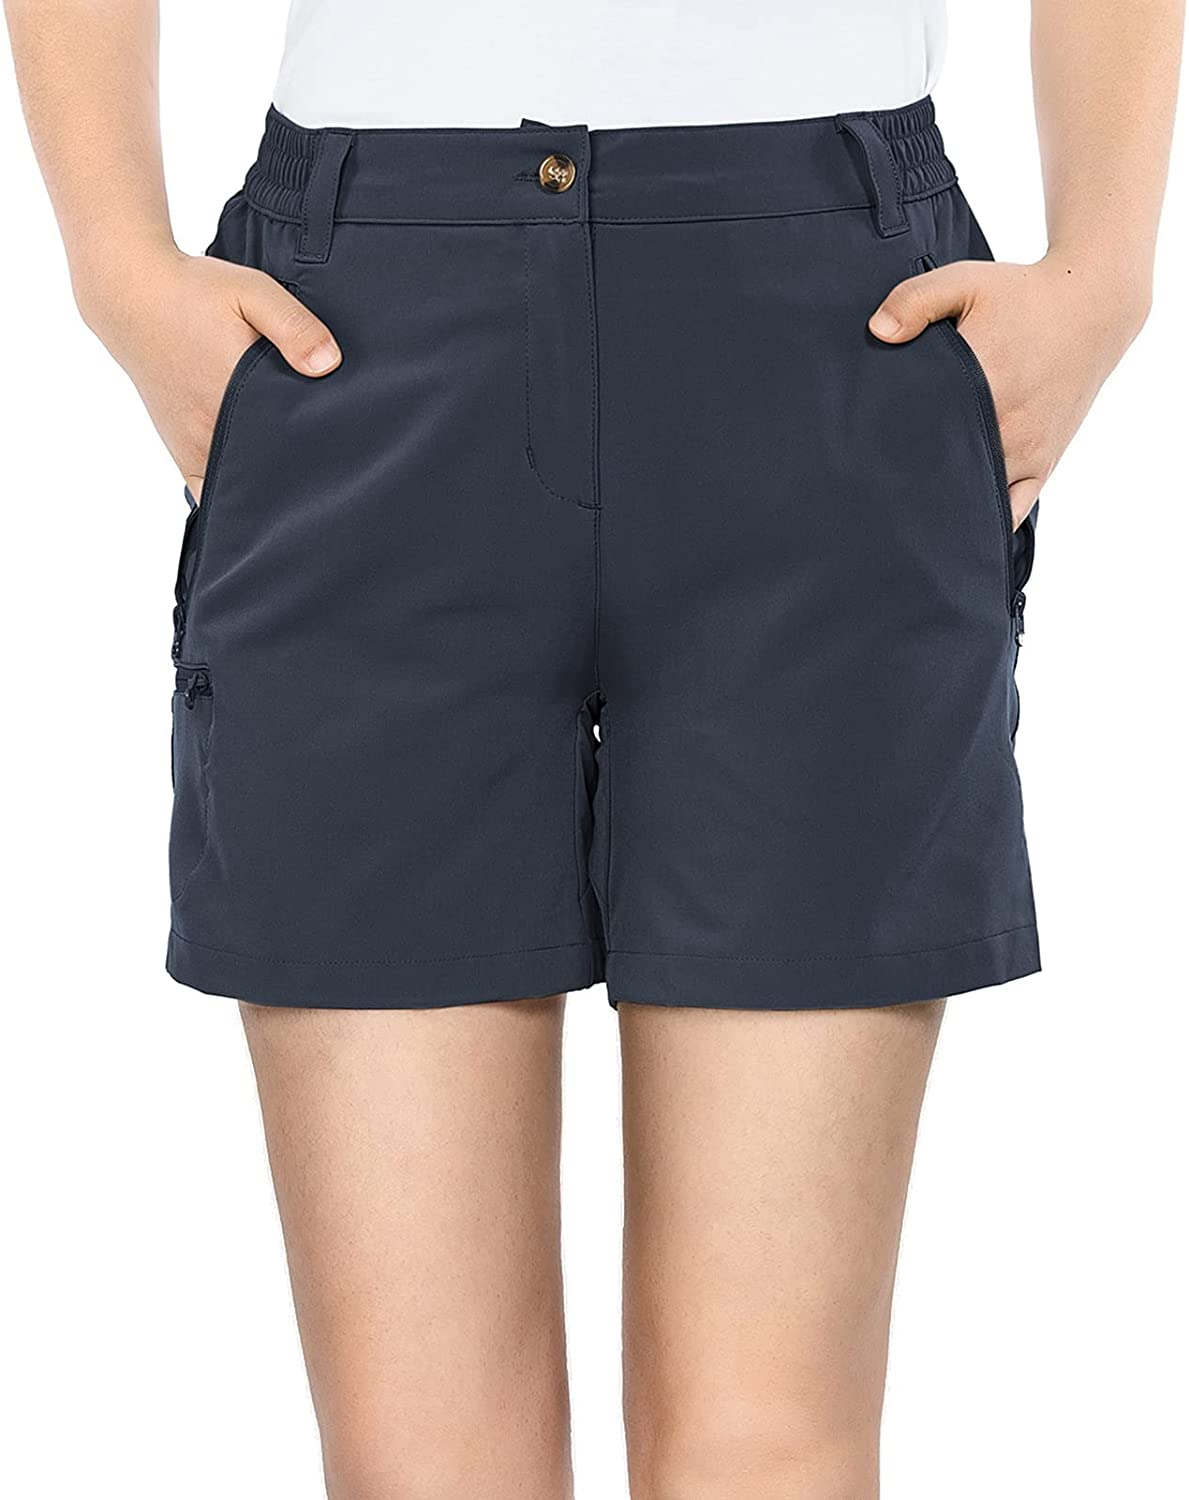 33 000ft Women's Raleigh Mall Hiking Shorts Max 88% OFF Dry Quick Cargo for